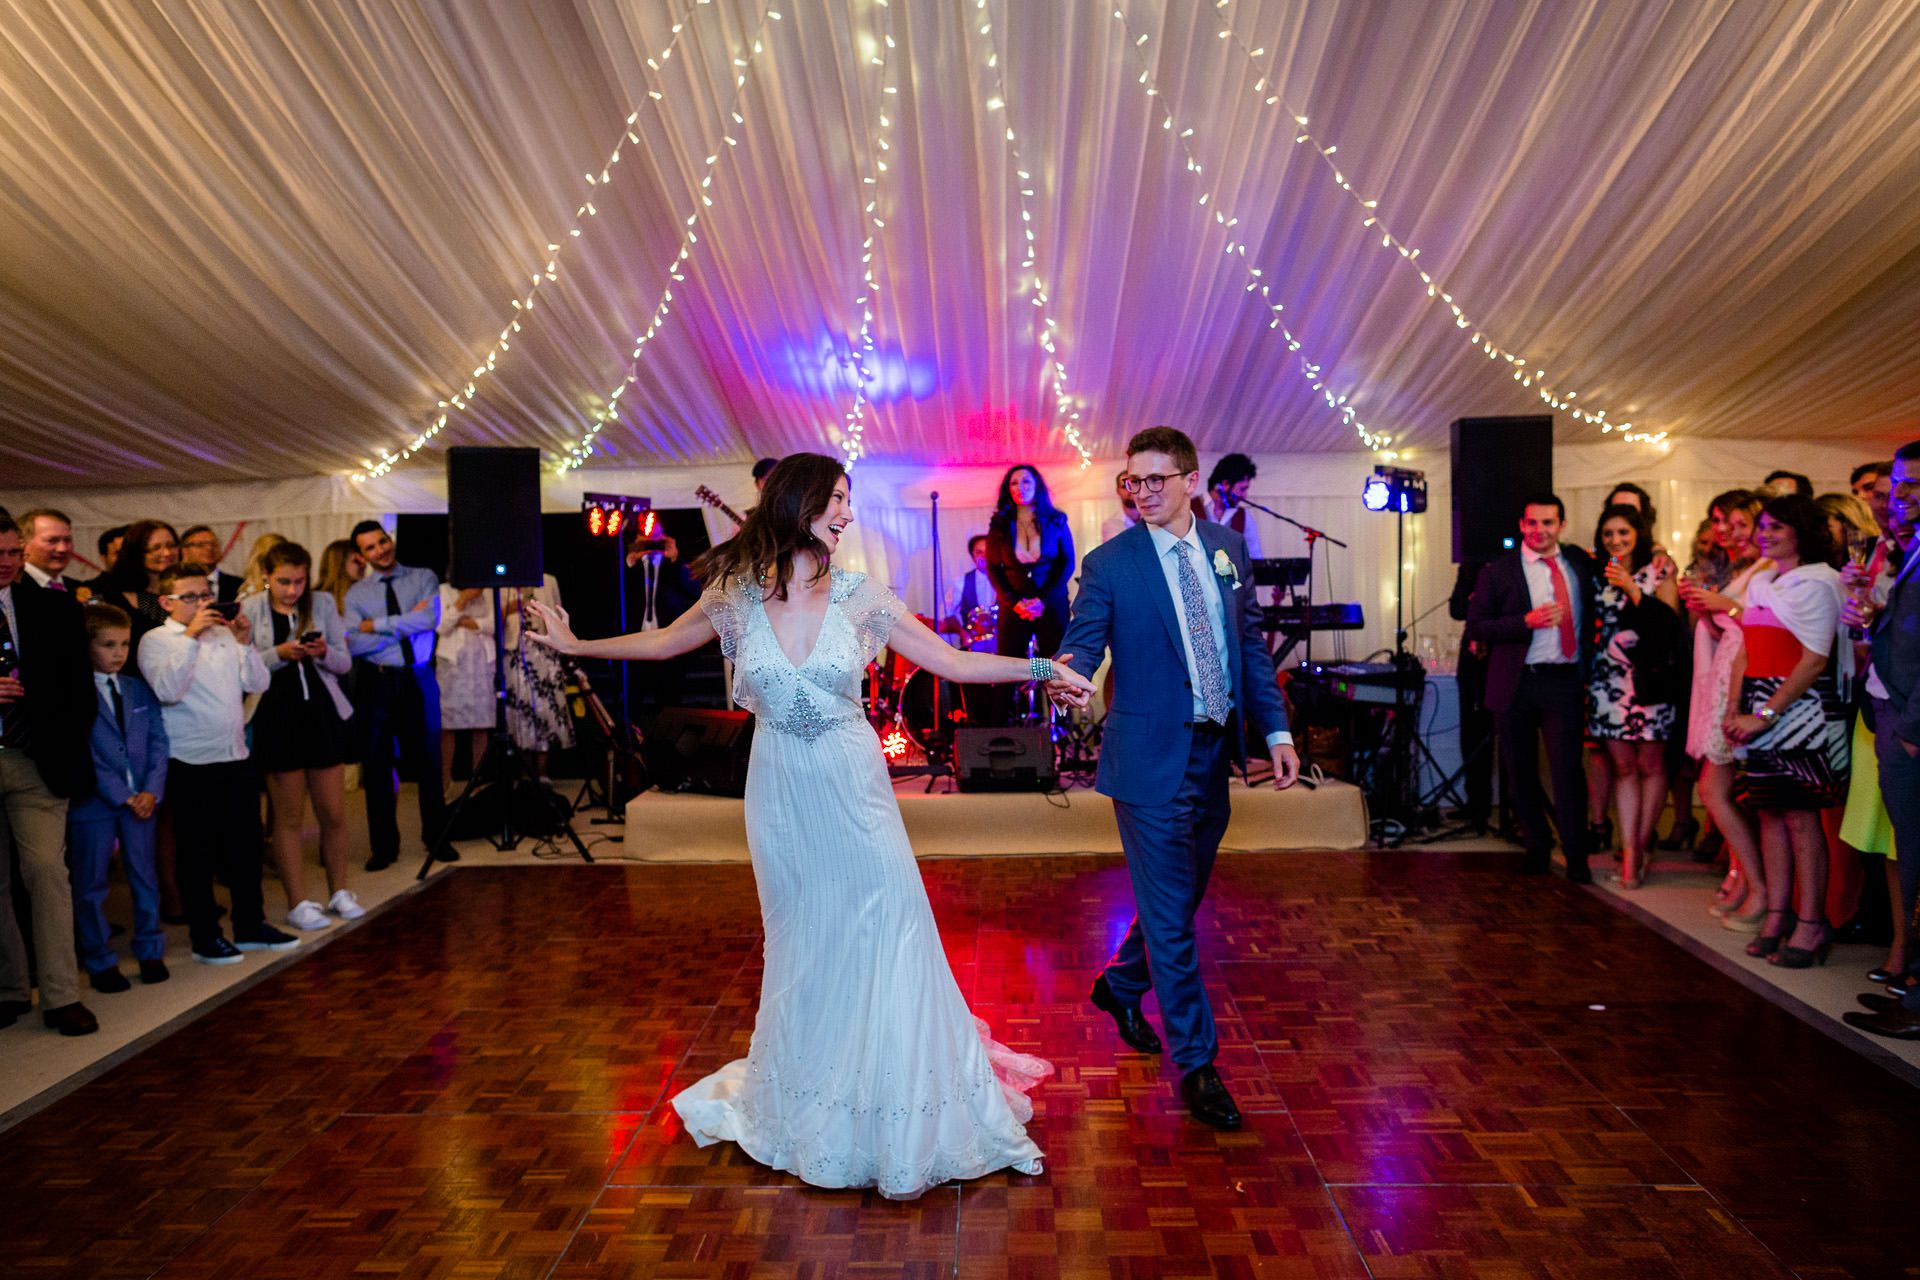 julia and rob the first wedding dance